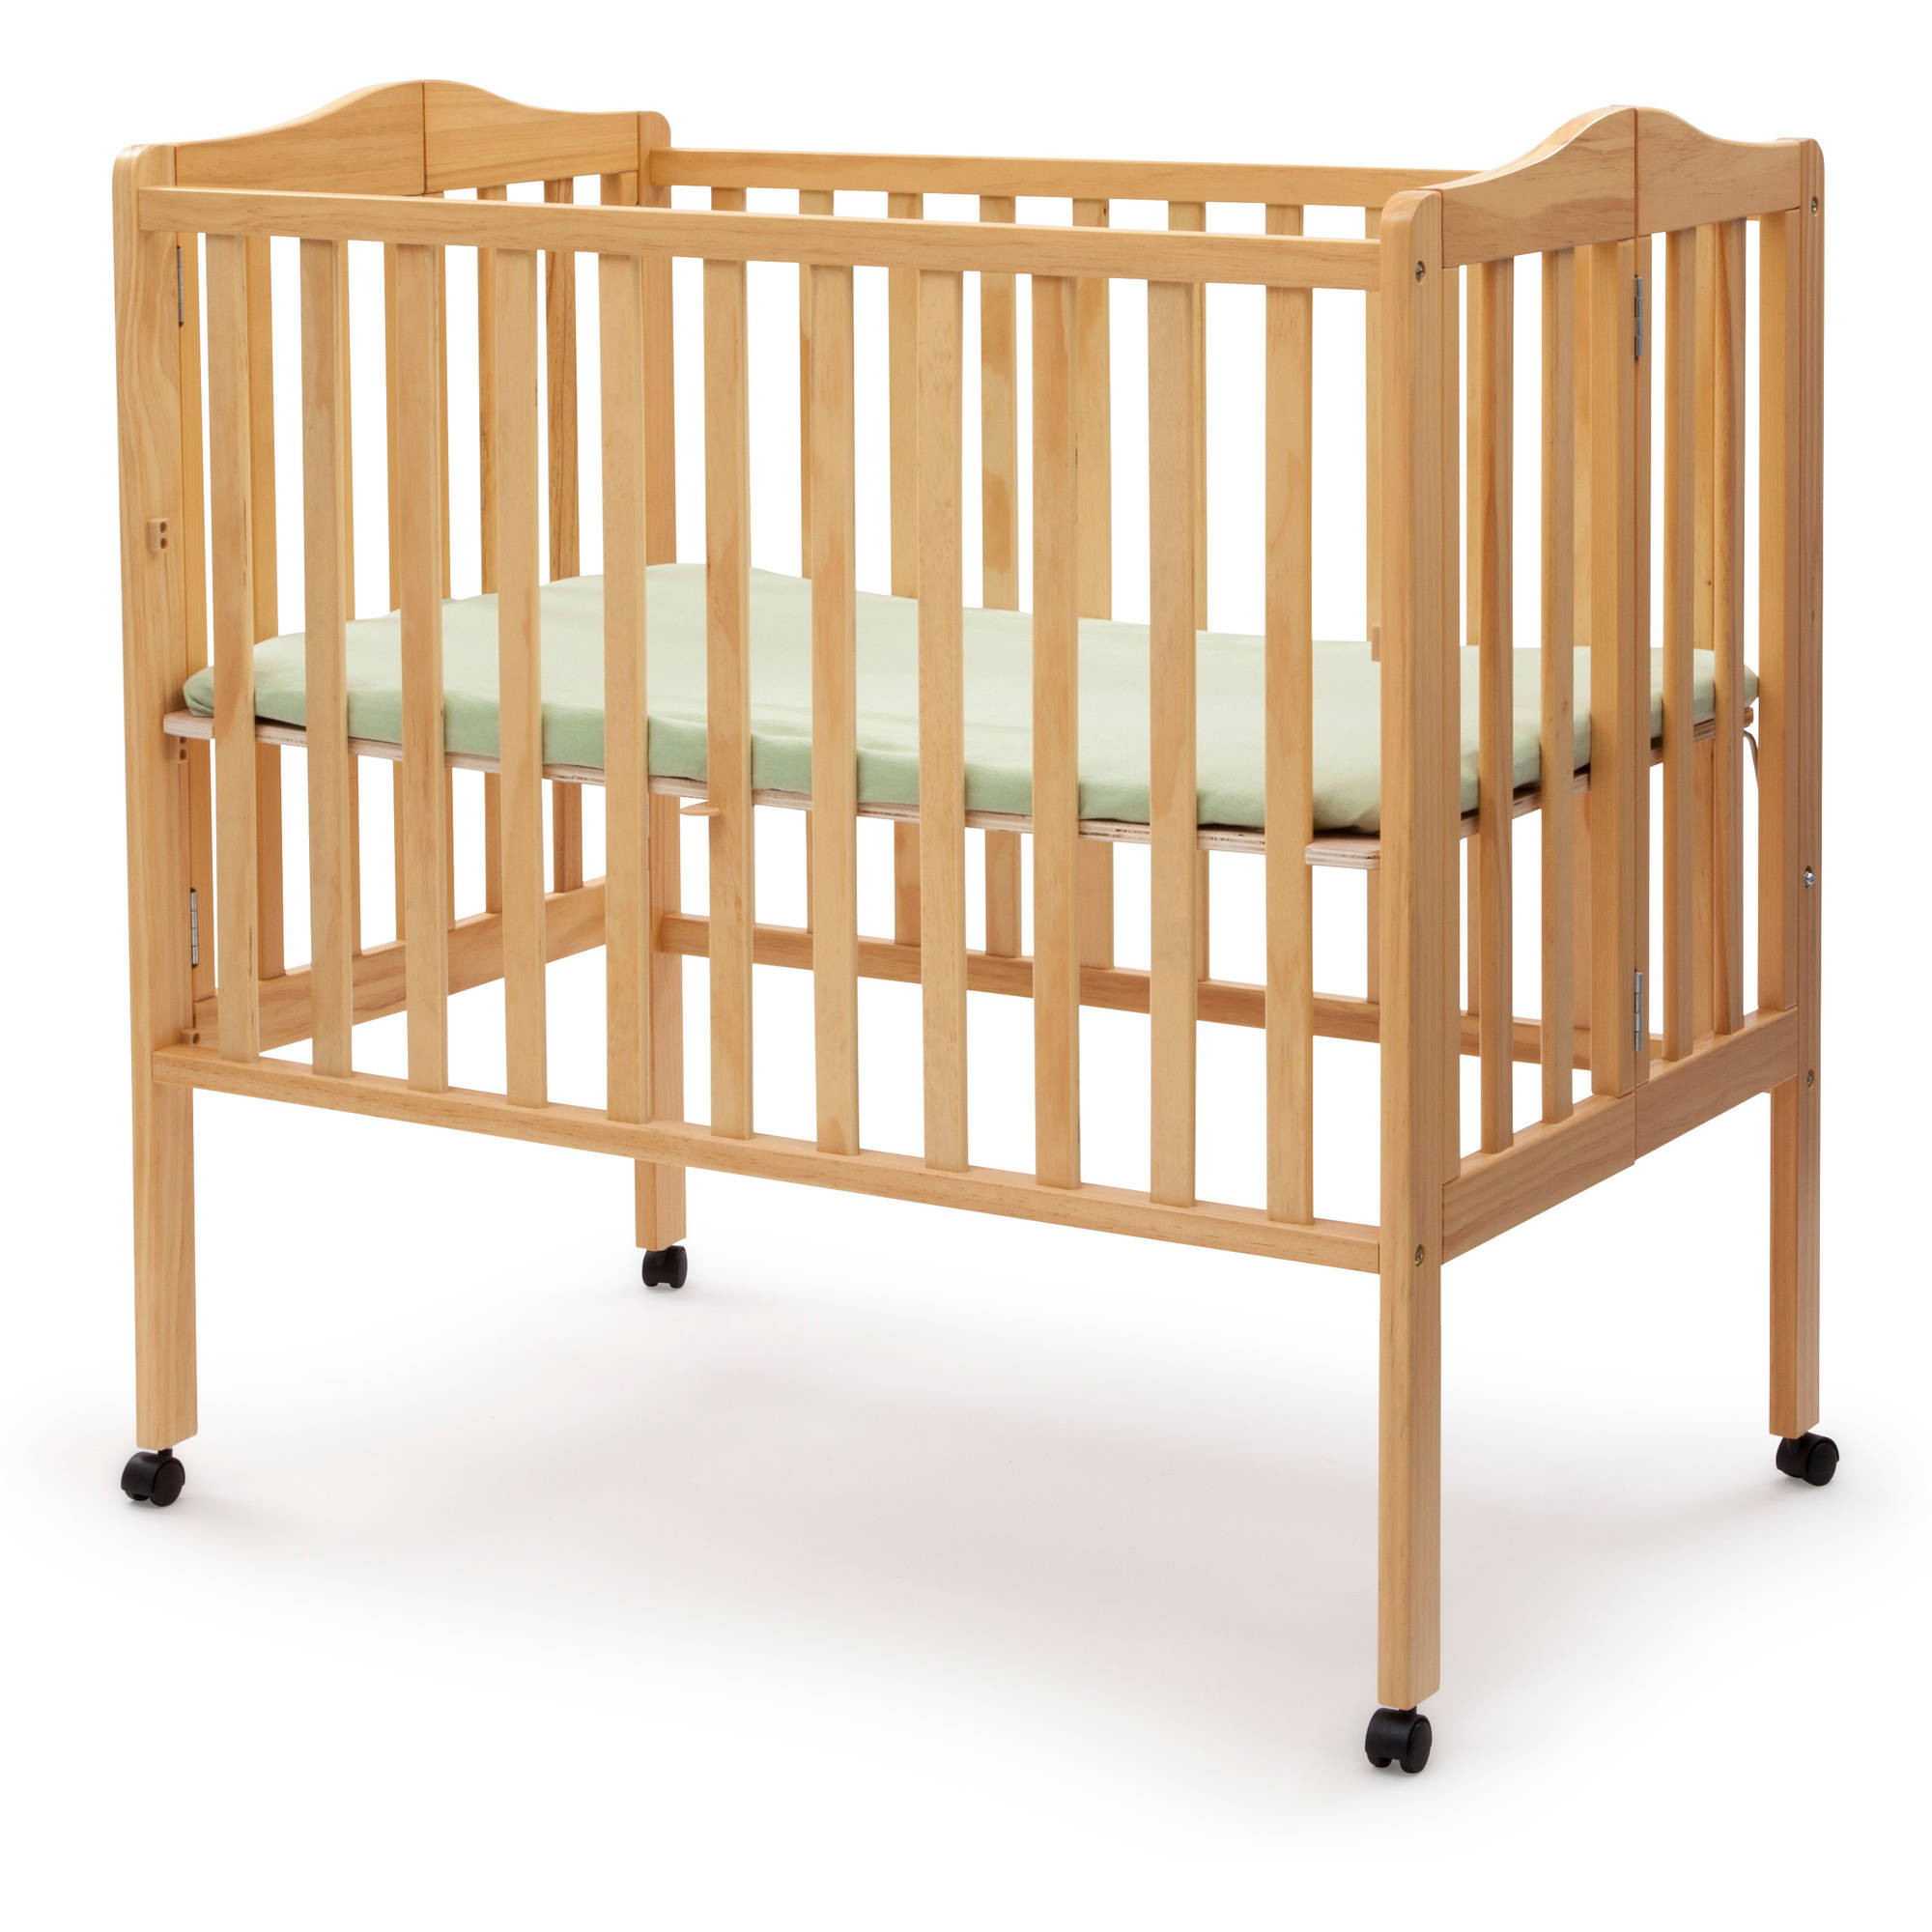 2000x2000 Clip Art Crib 3 Free Clipart Of A Baby 3880 X 3241e Drawing Home